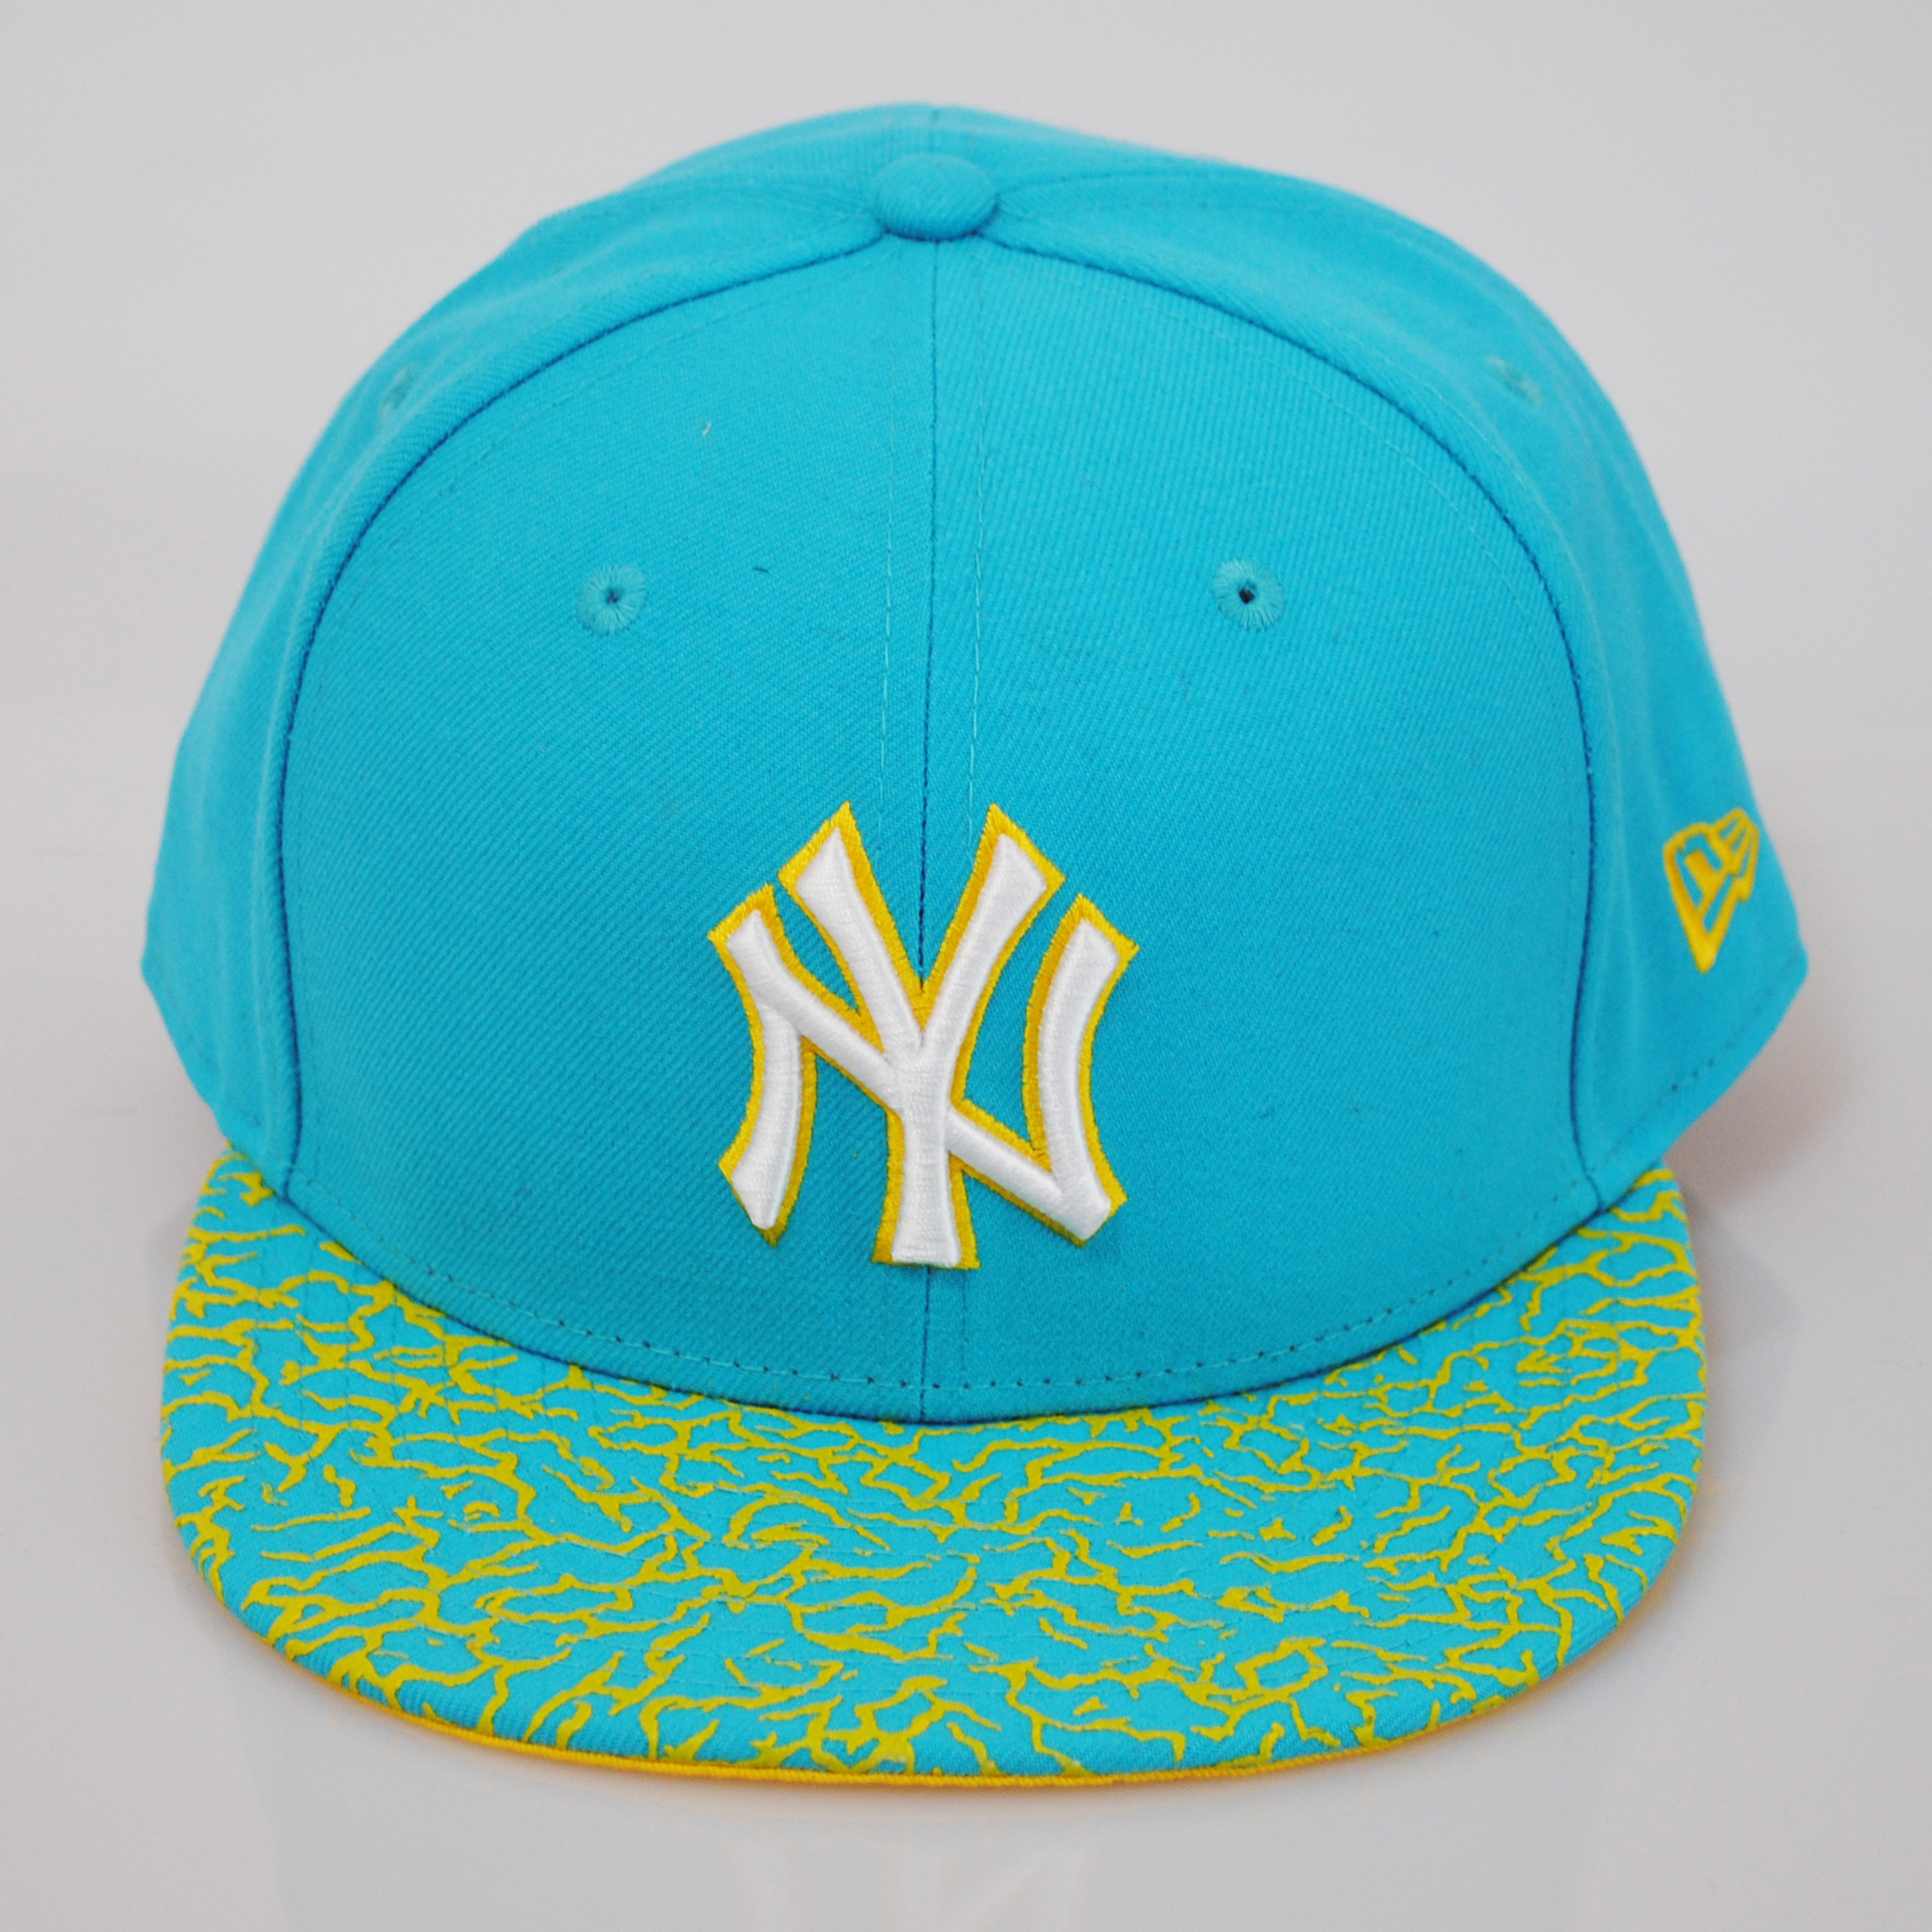 New York Yankees New Era 59fifty